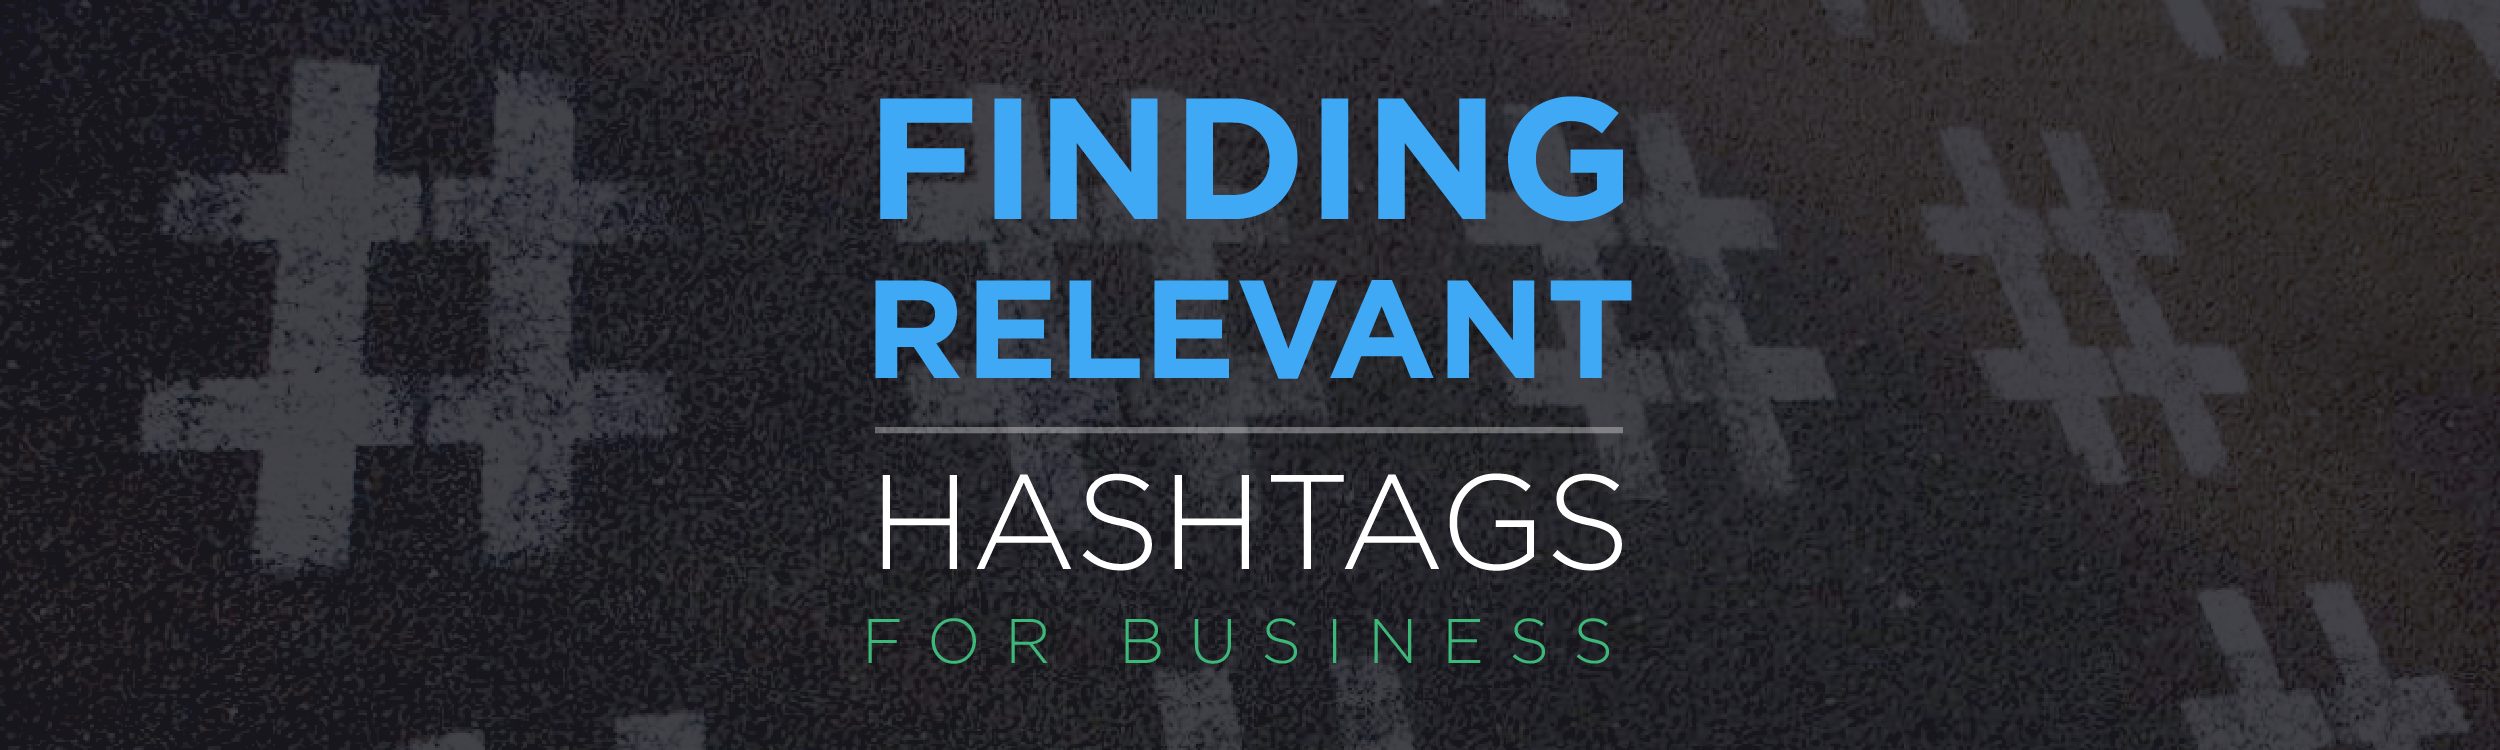 Finding Relevant hashtags